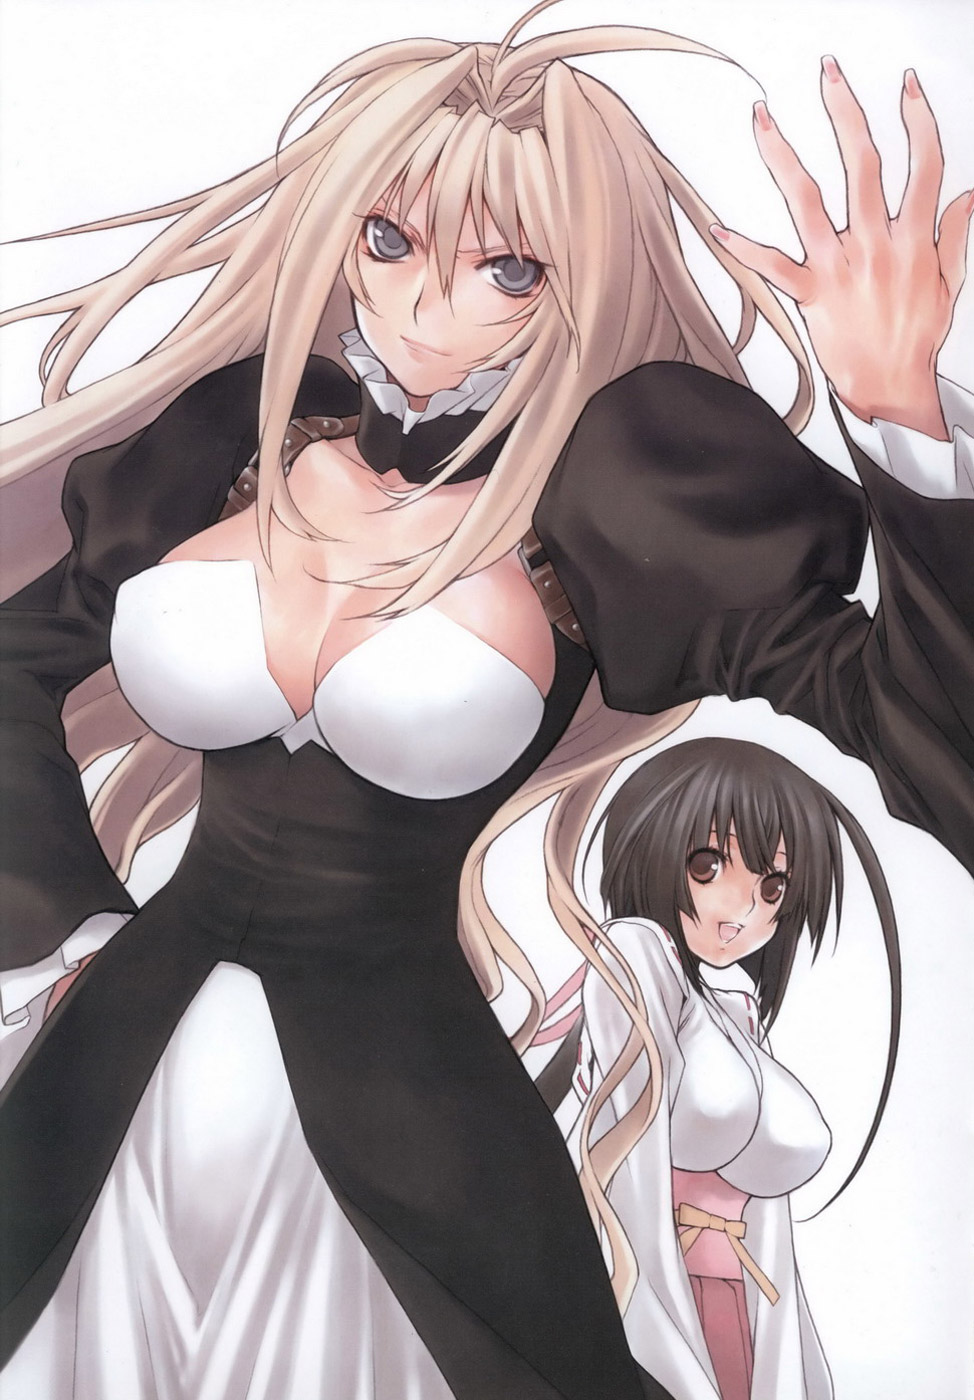 Sekirei Engagement Gokurakuin Visual Art Collection image by Sakurako Gokurakuin